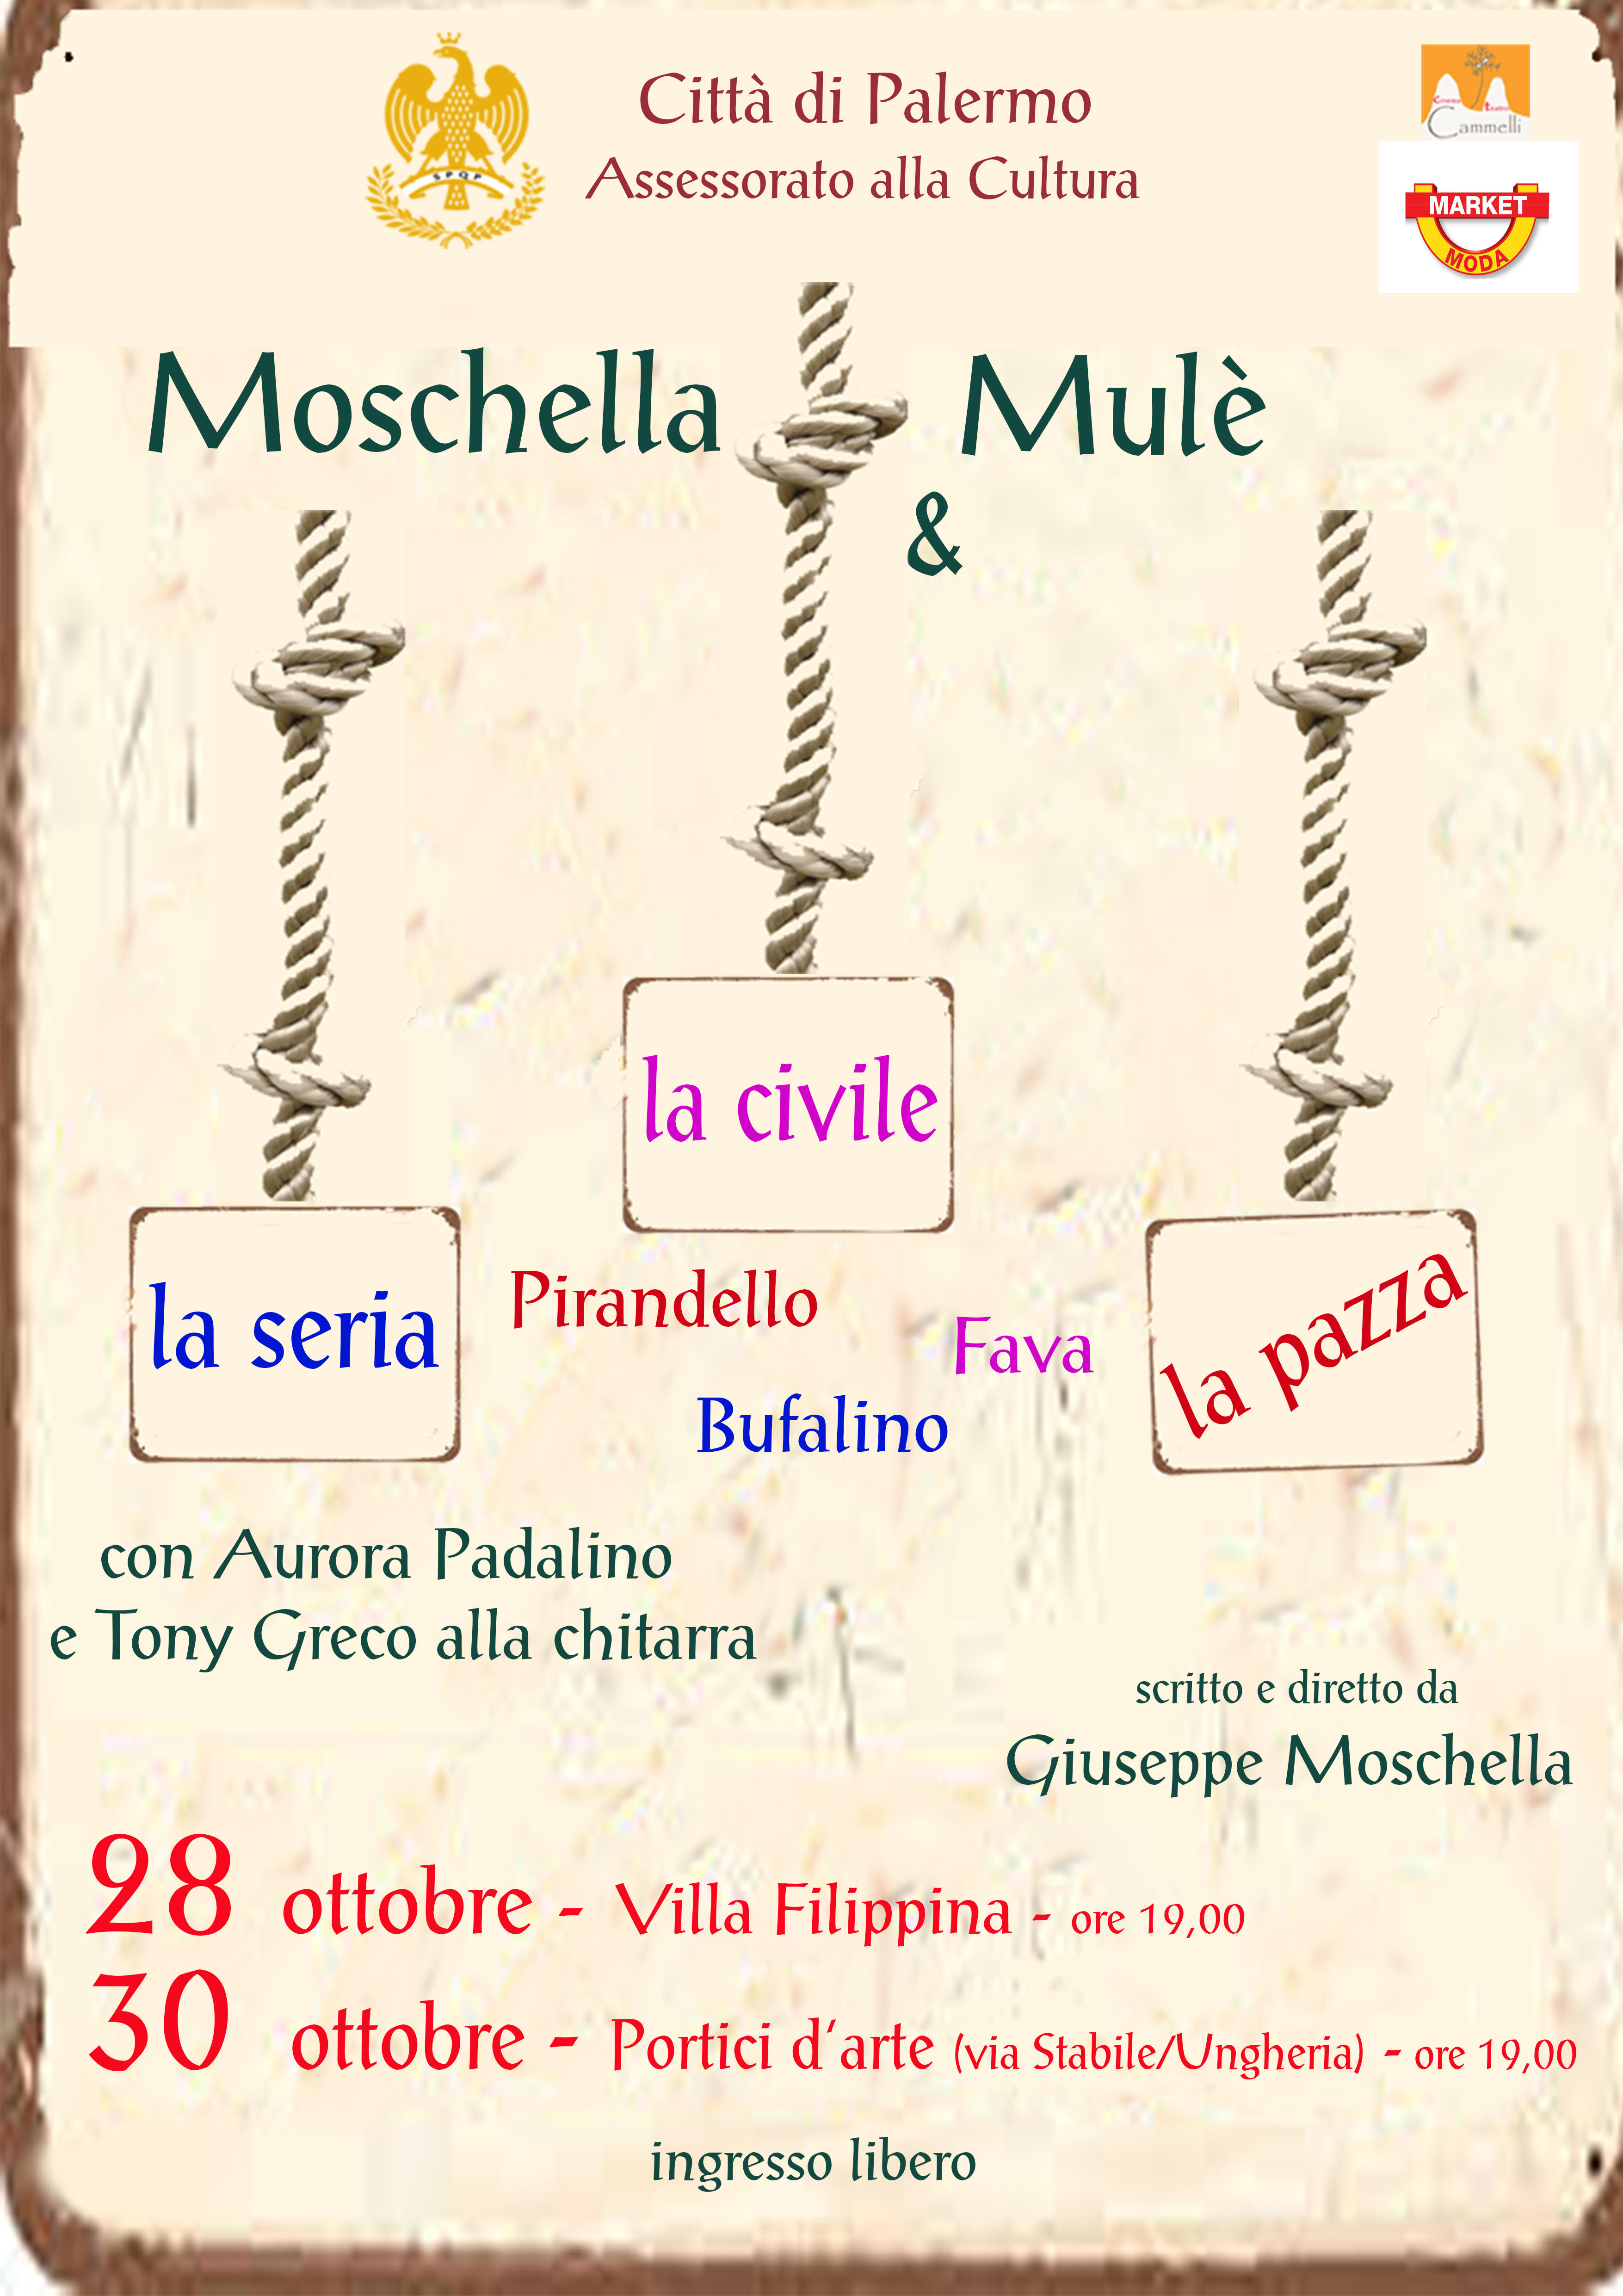 Moschella&Mulè in un reading con musiche dal vivo